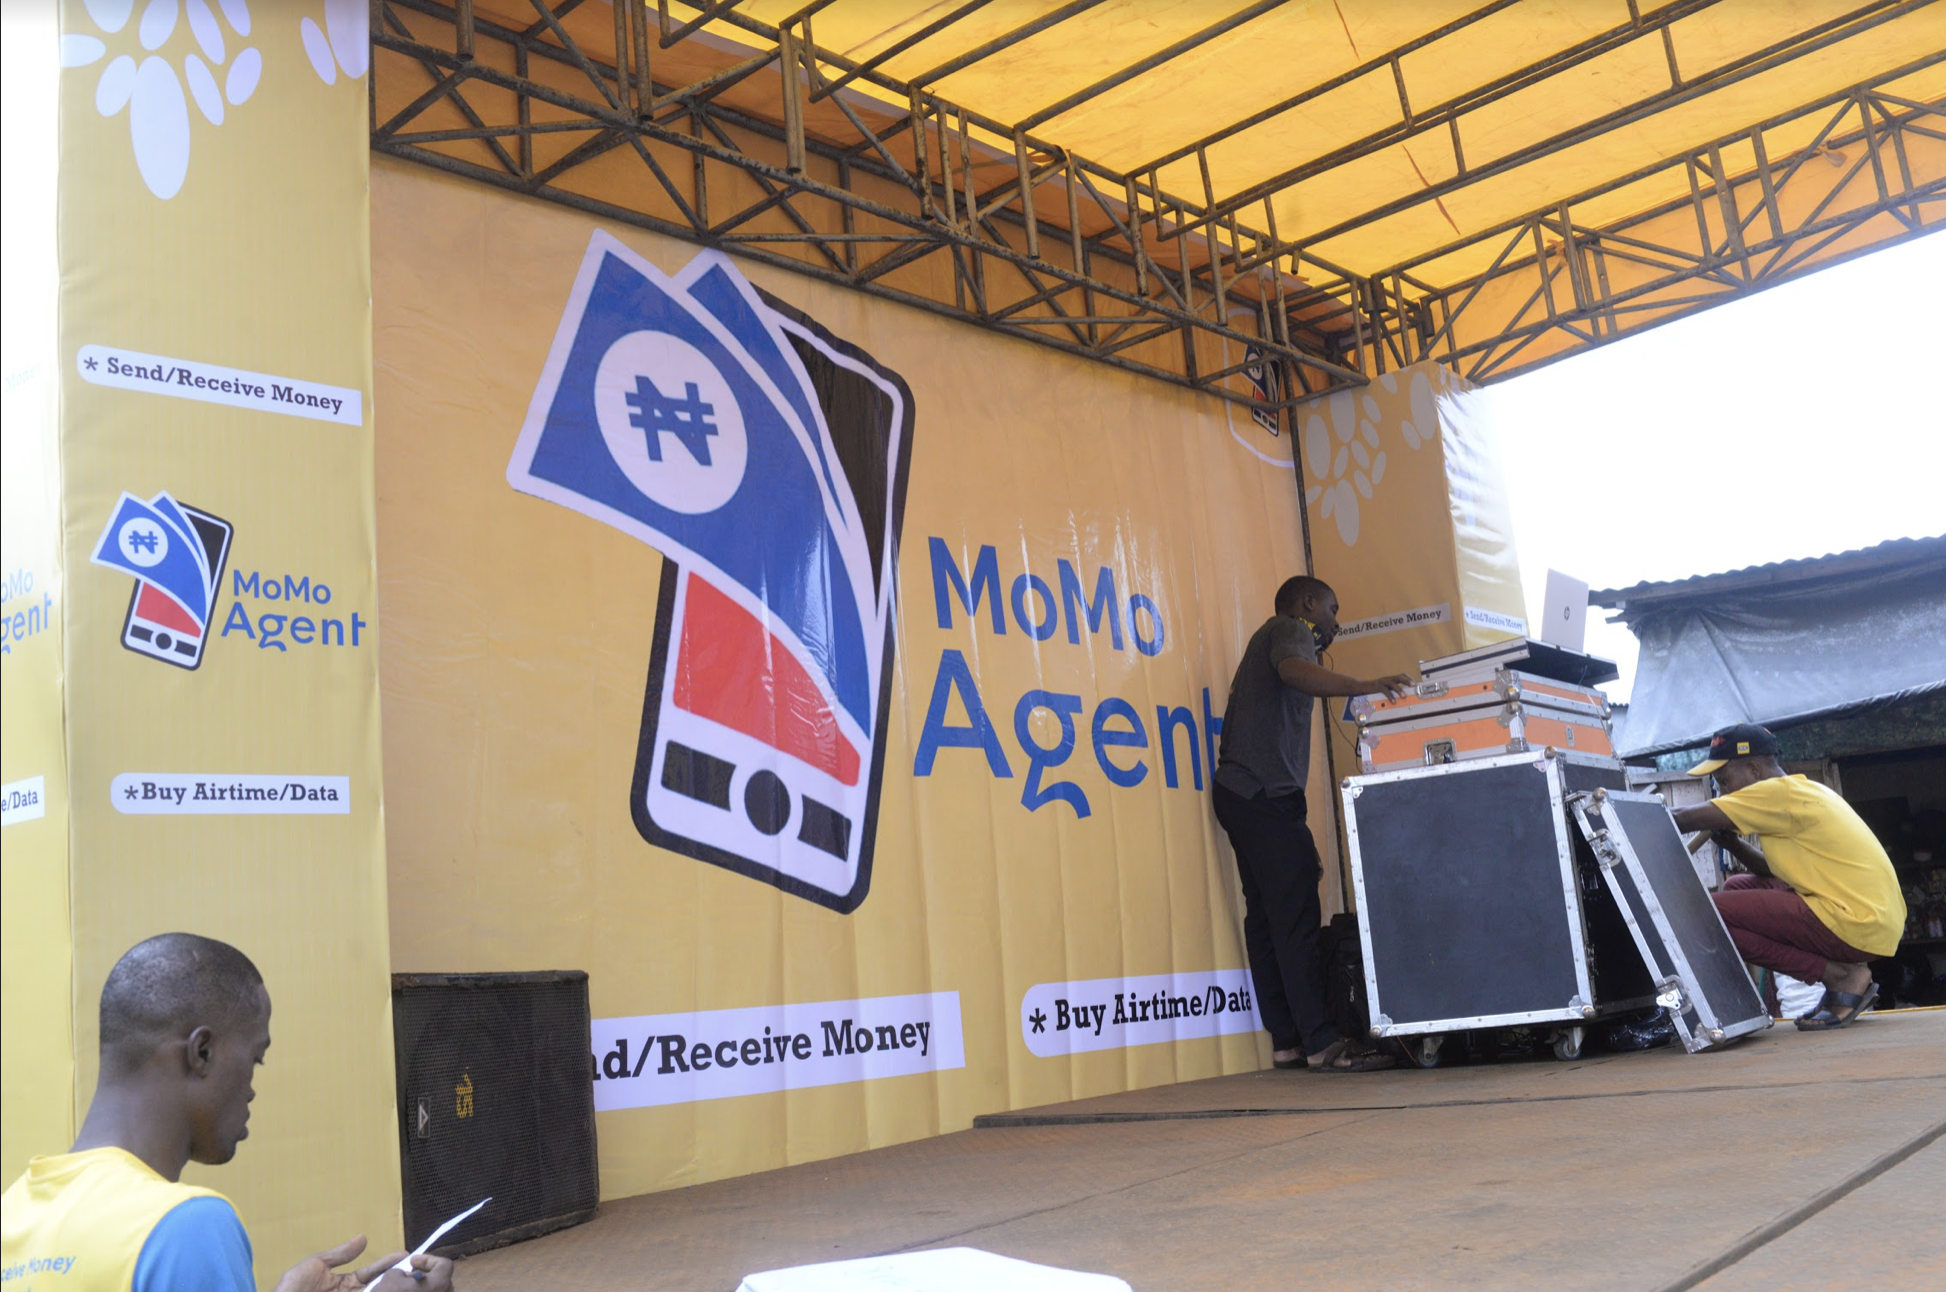 become mtn momo agent in nigeria for mtn mobile money services